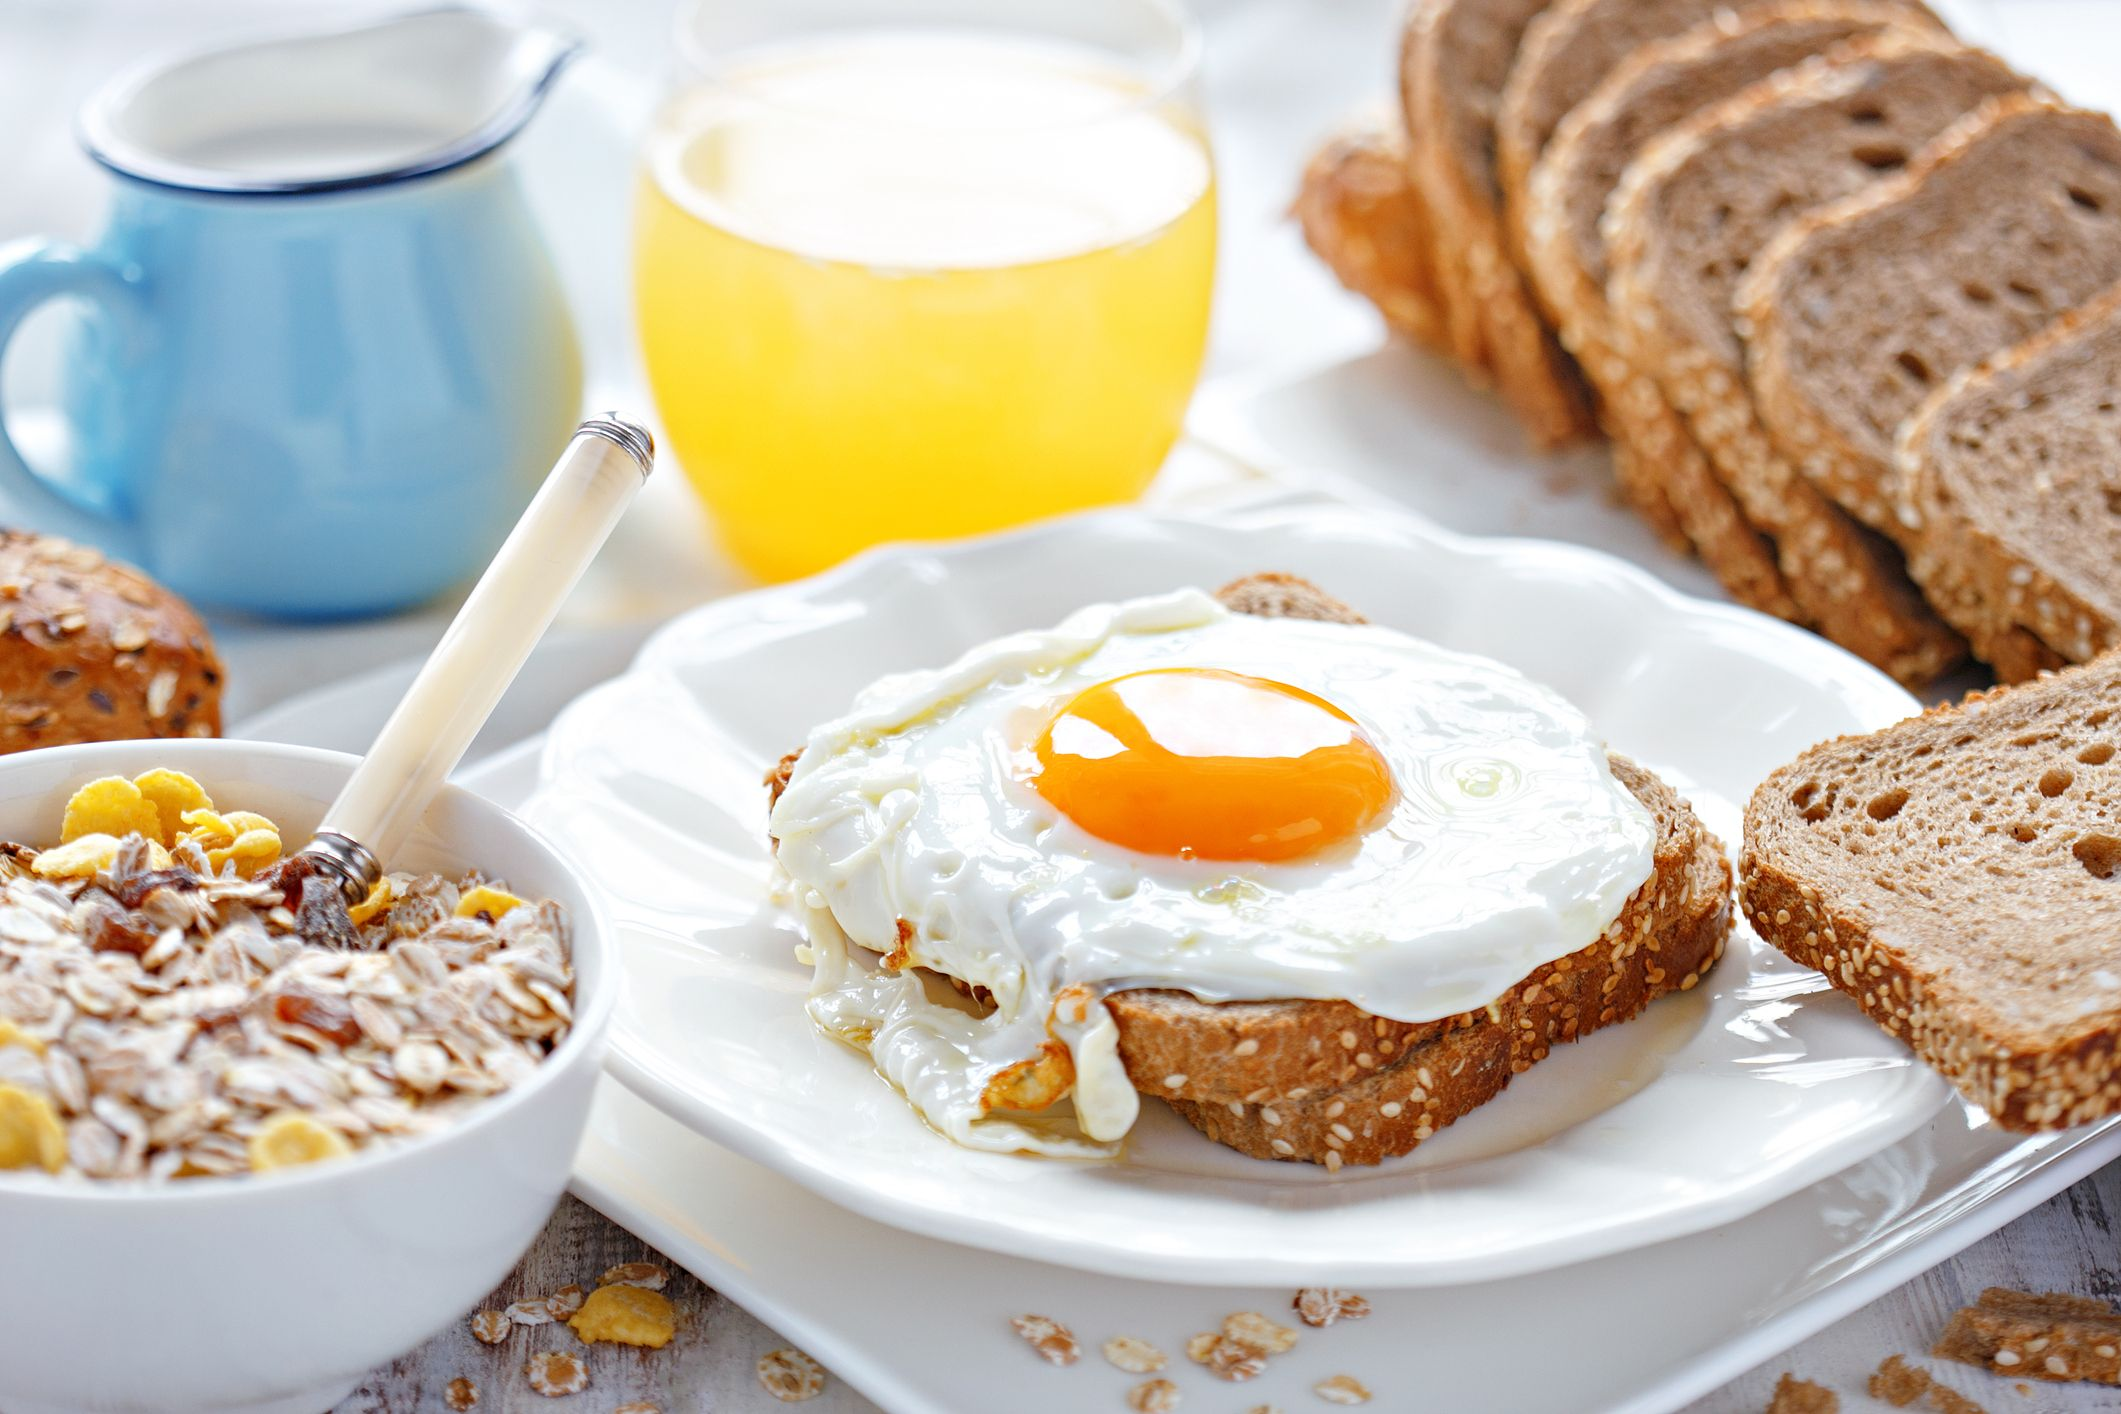 Are Eggs Healthy? - 5 Health Benefits of Eggs